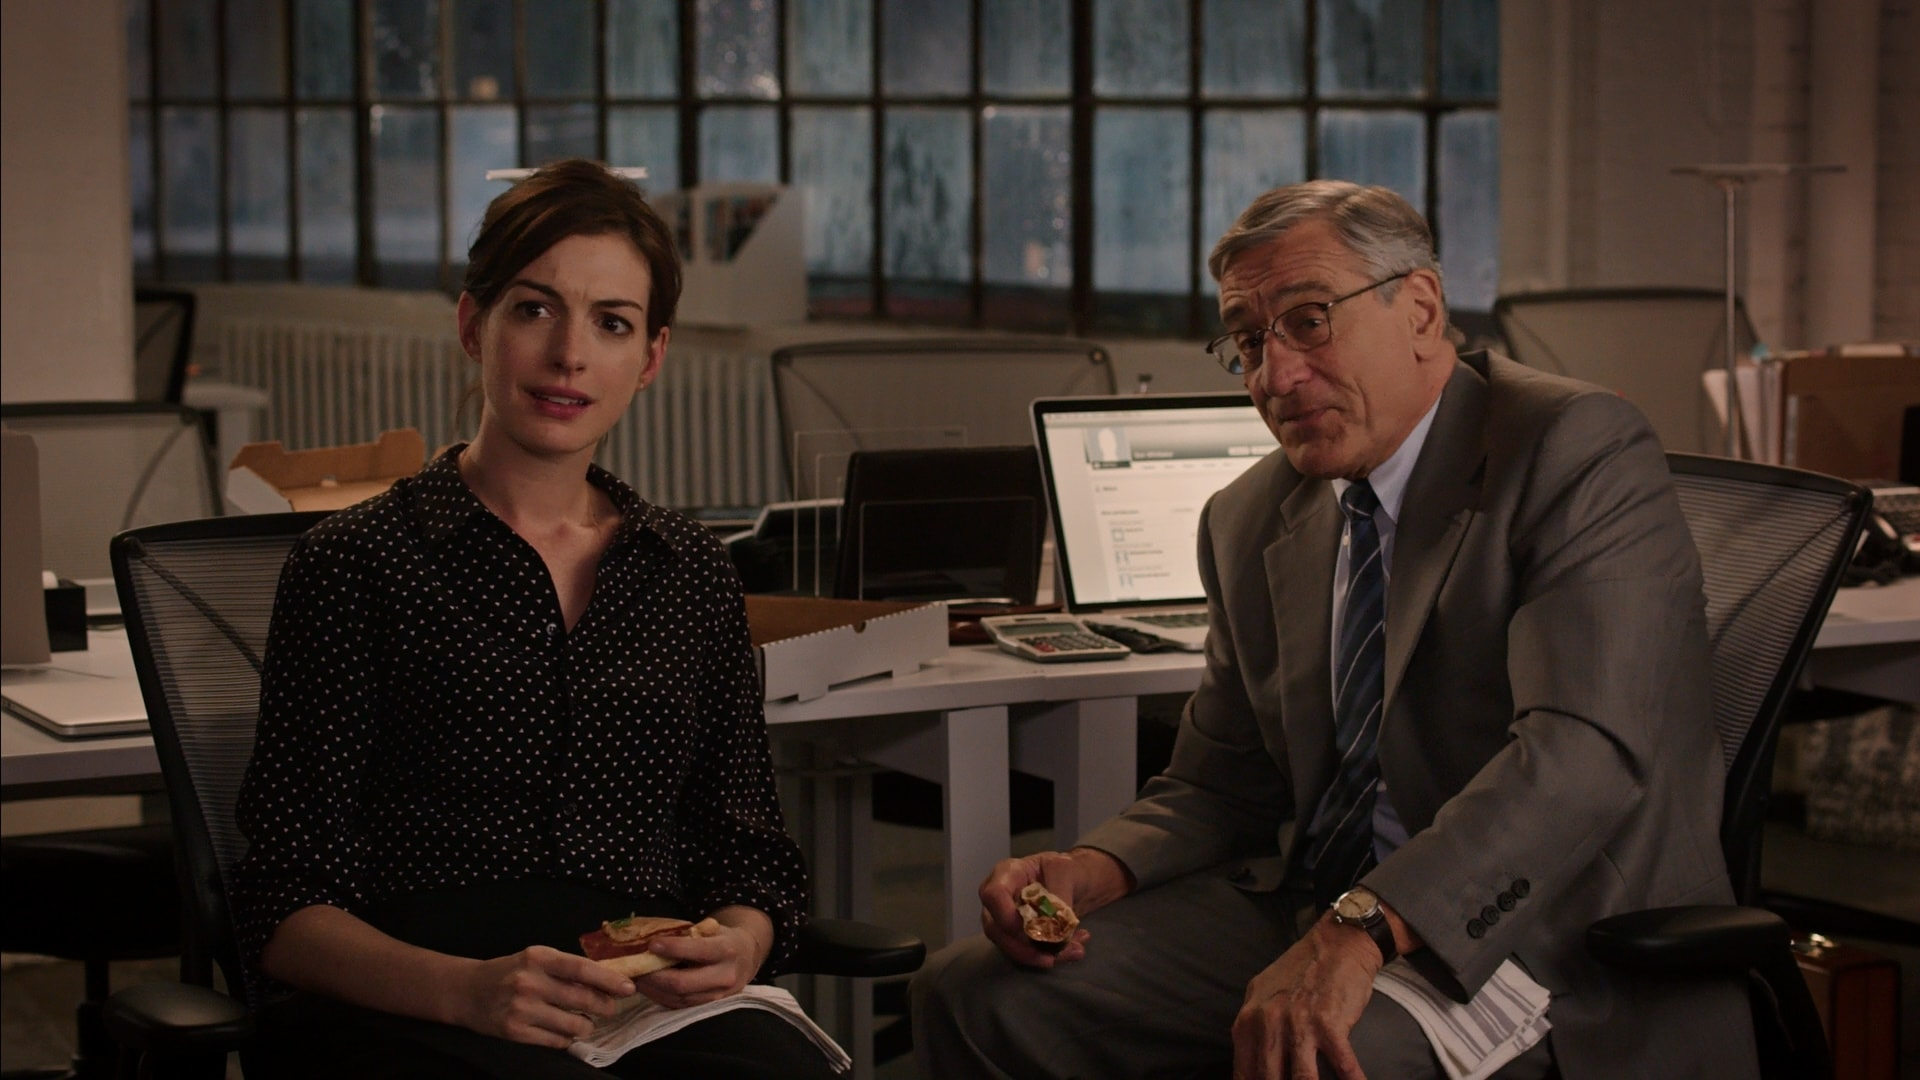 The Intern Wallpapers hd